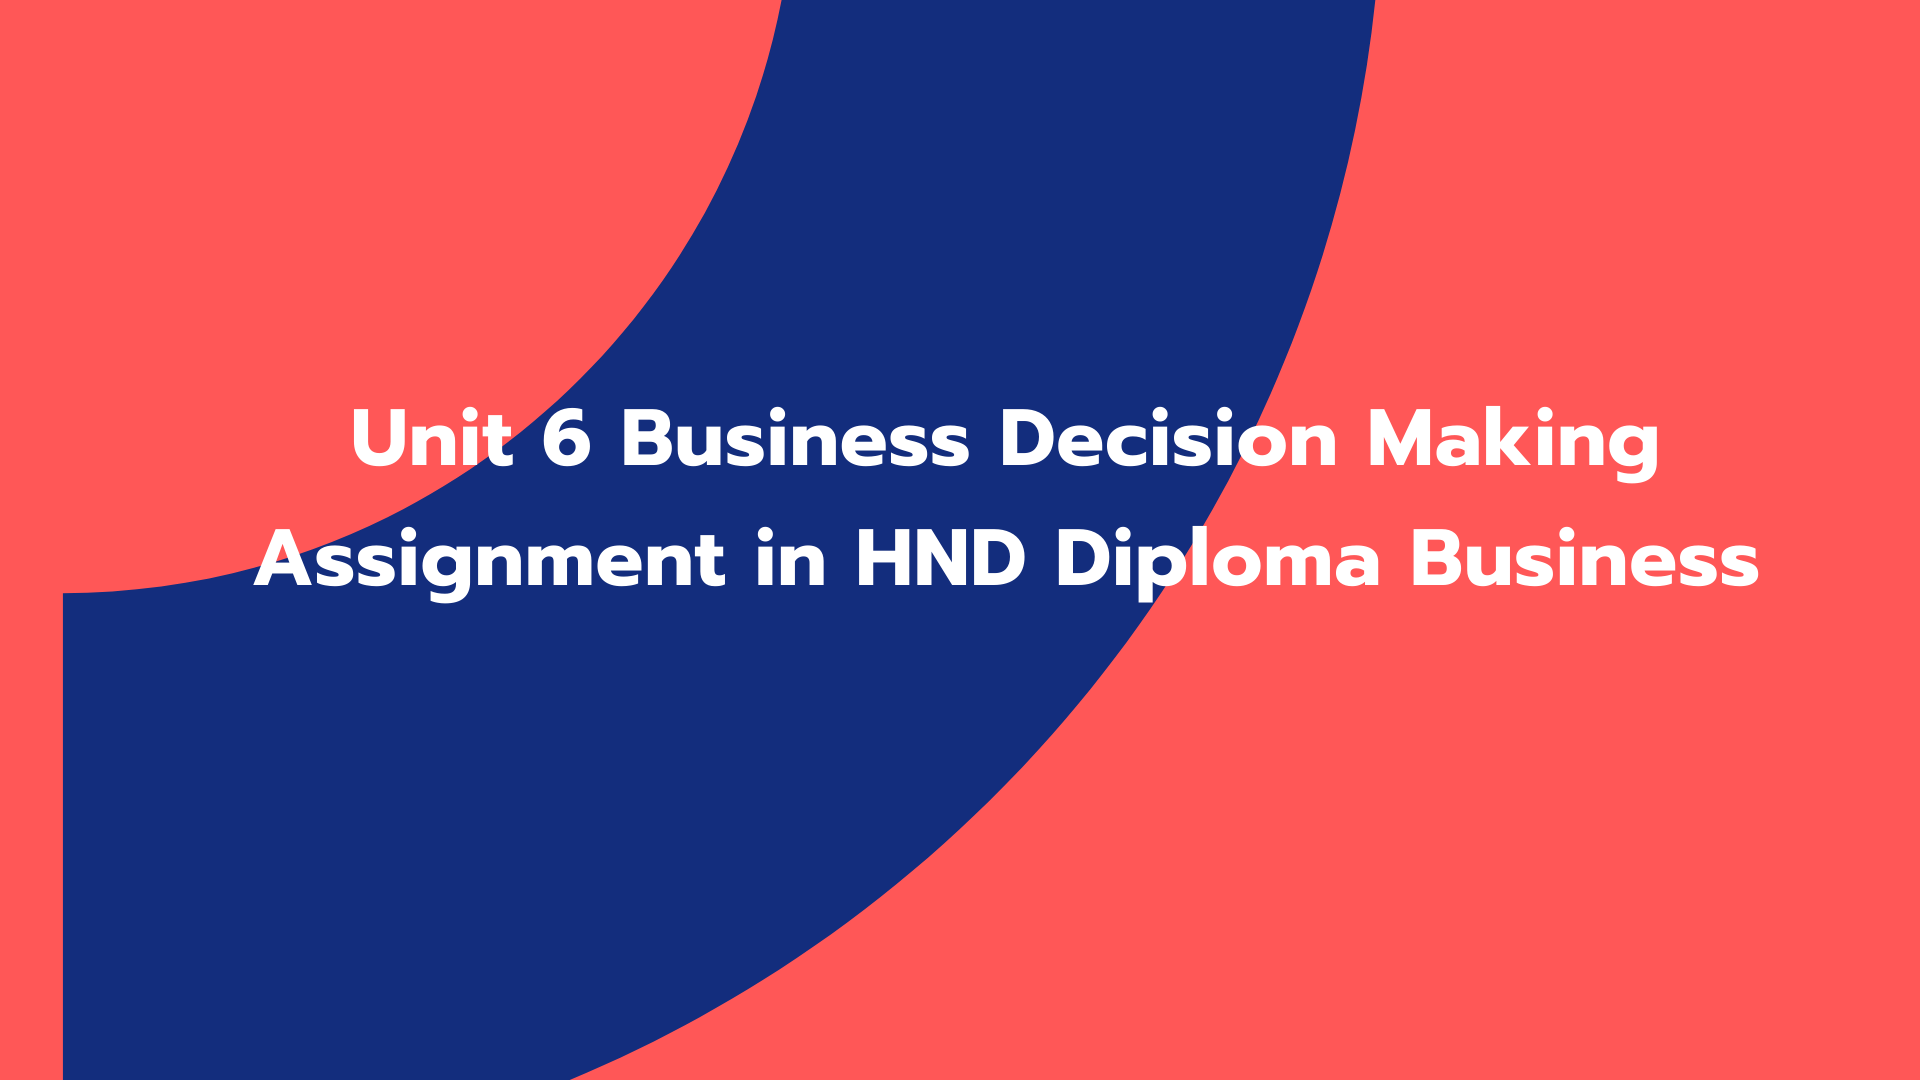 Unit 6 Business Decision Making Assignment in HND Diploma Business